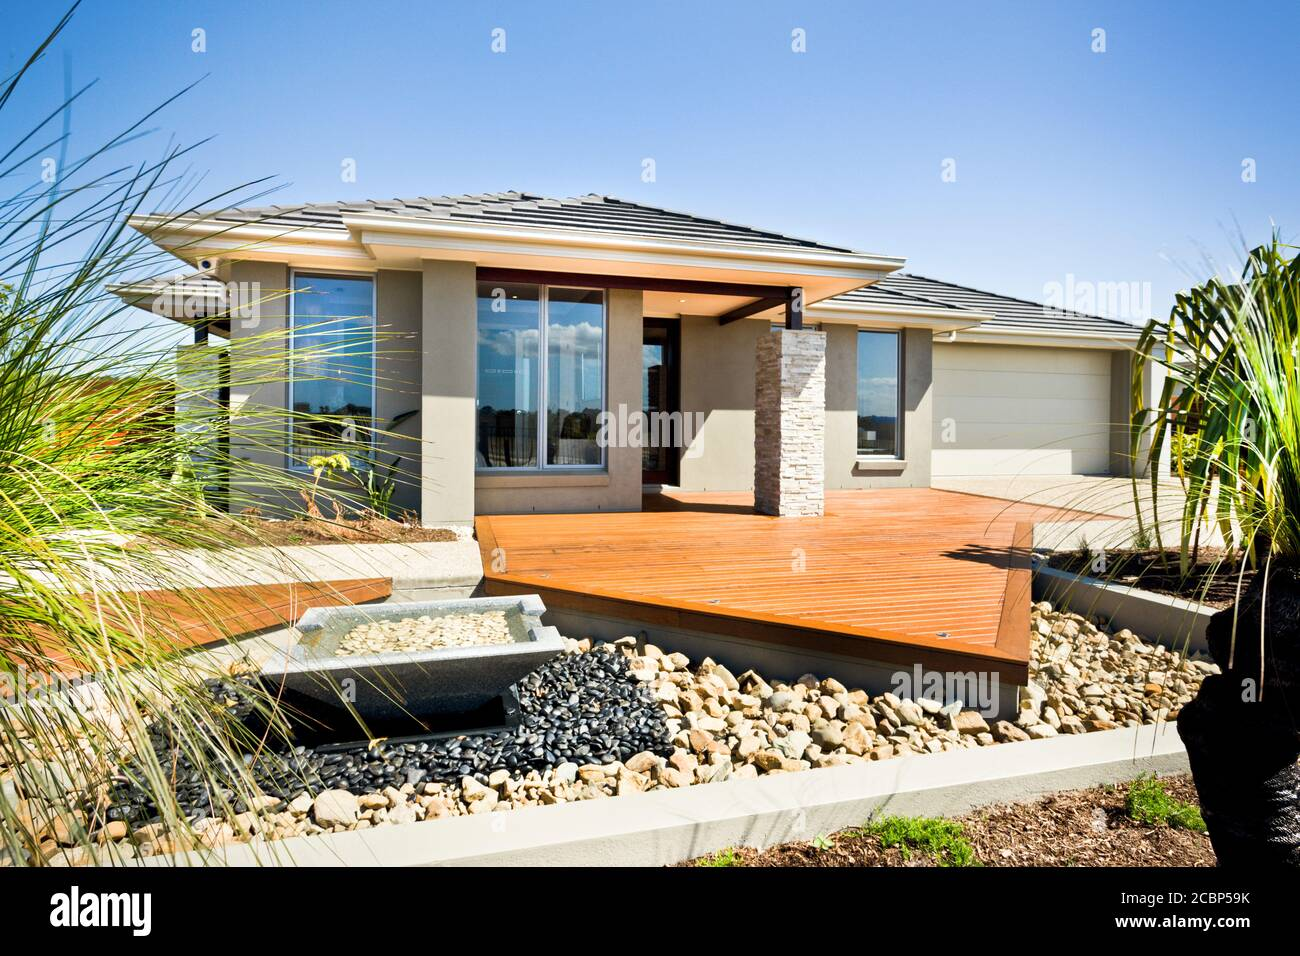 A Luxury Modern House Exterior Real Estate Housing Family Domestic Life Concepts Stock Photo Alamy